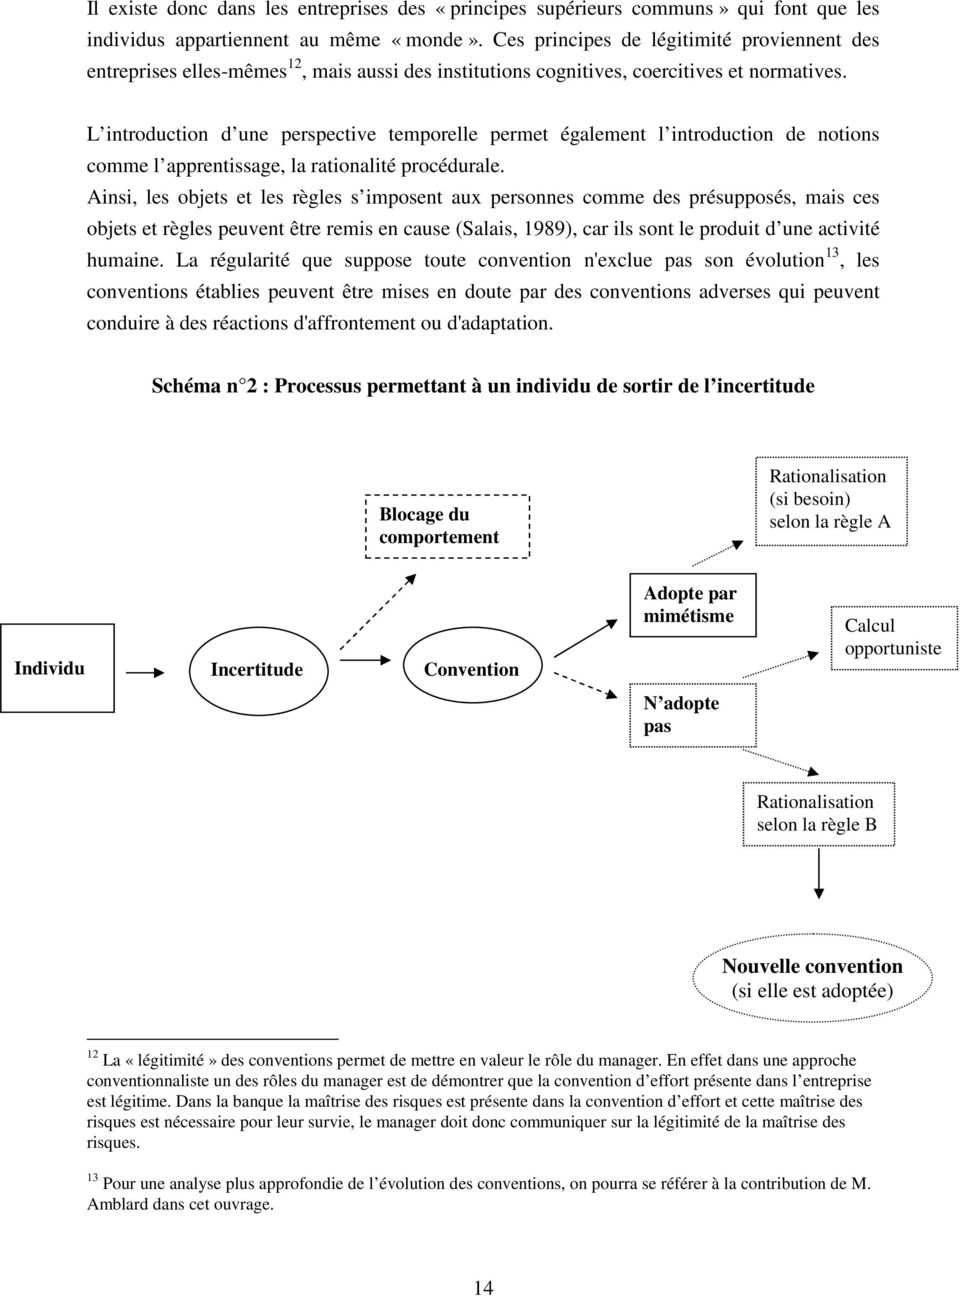 L introduction d une perspective temporelle permet également l introduction de notions comme l apprentissage, la rationalité procédurale.